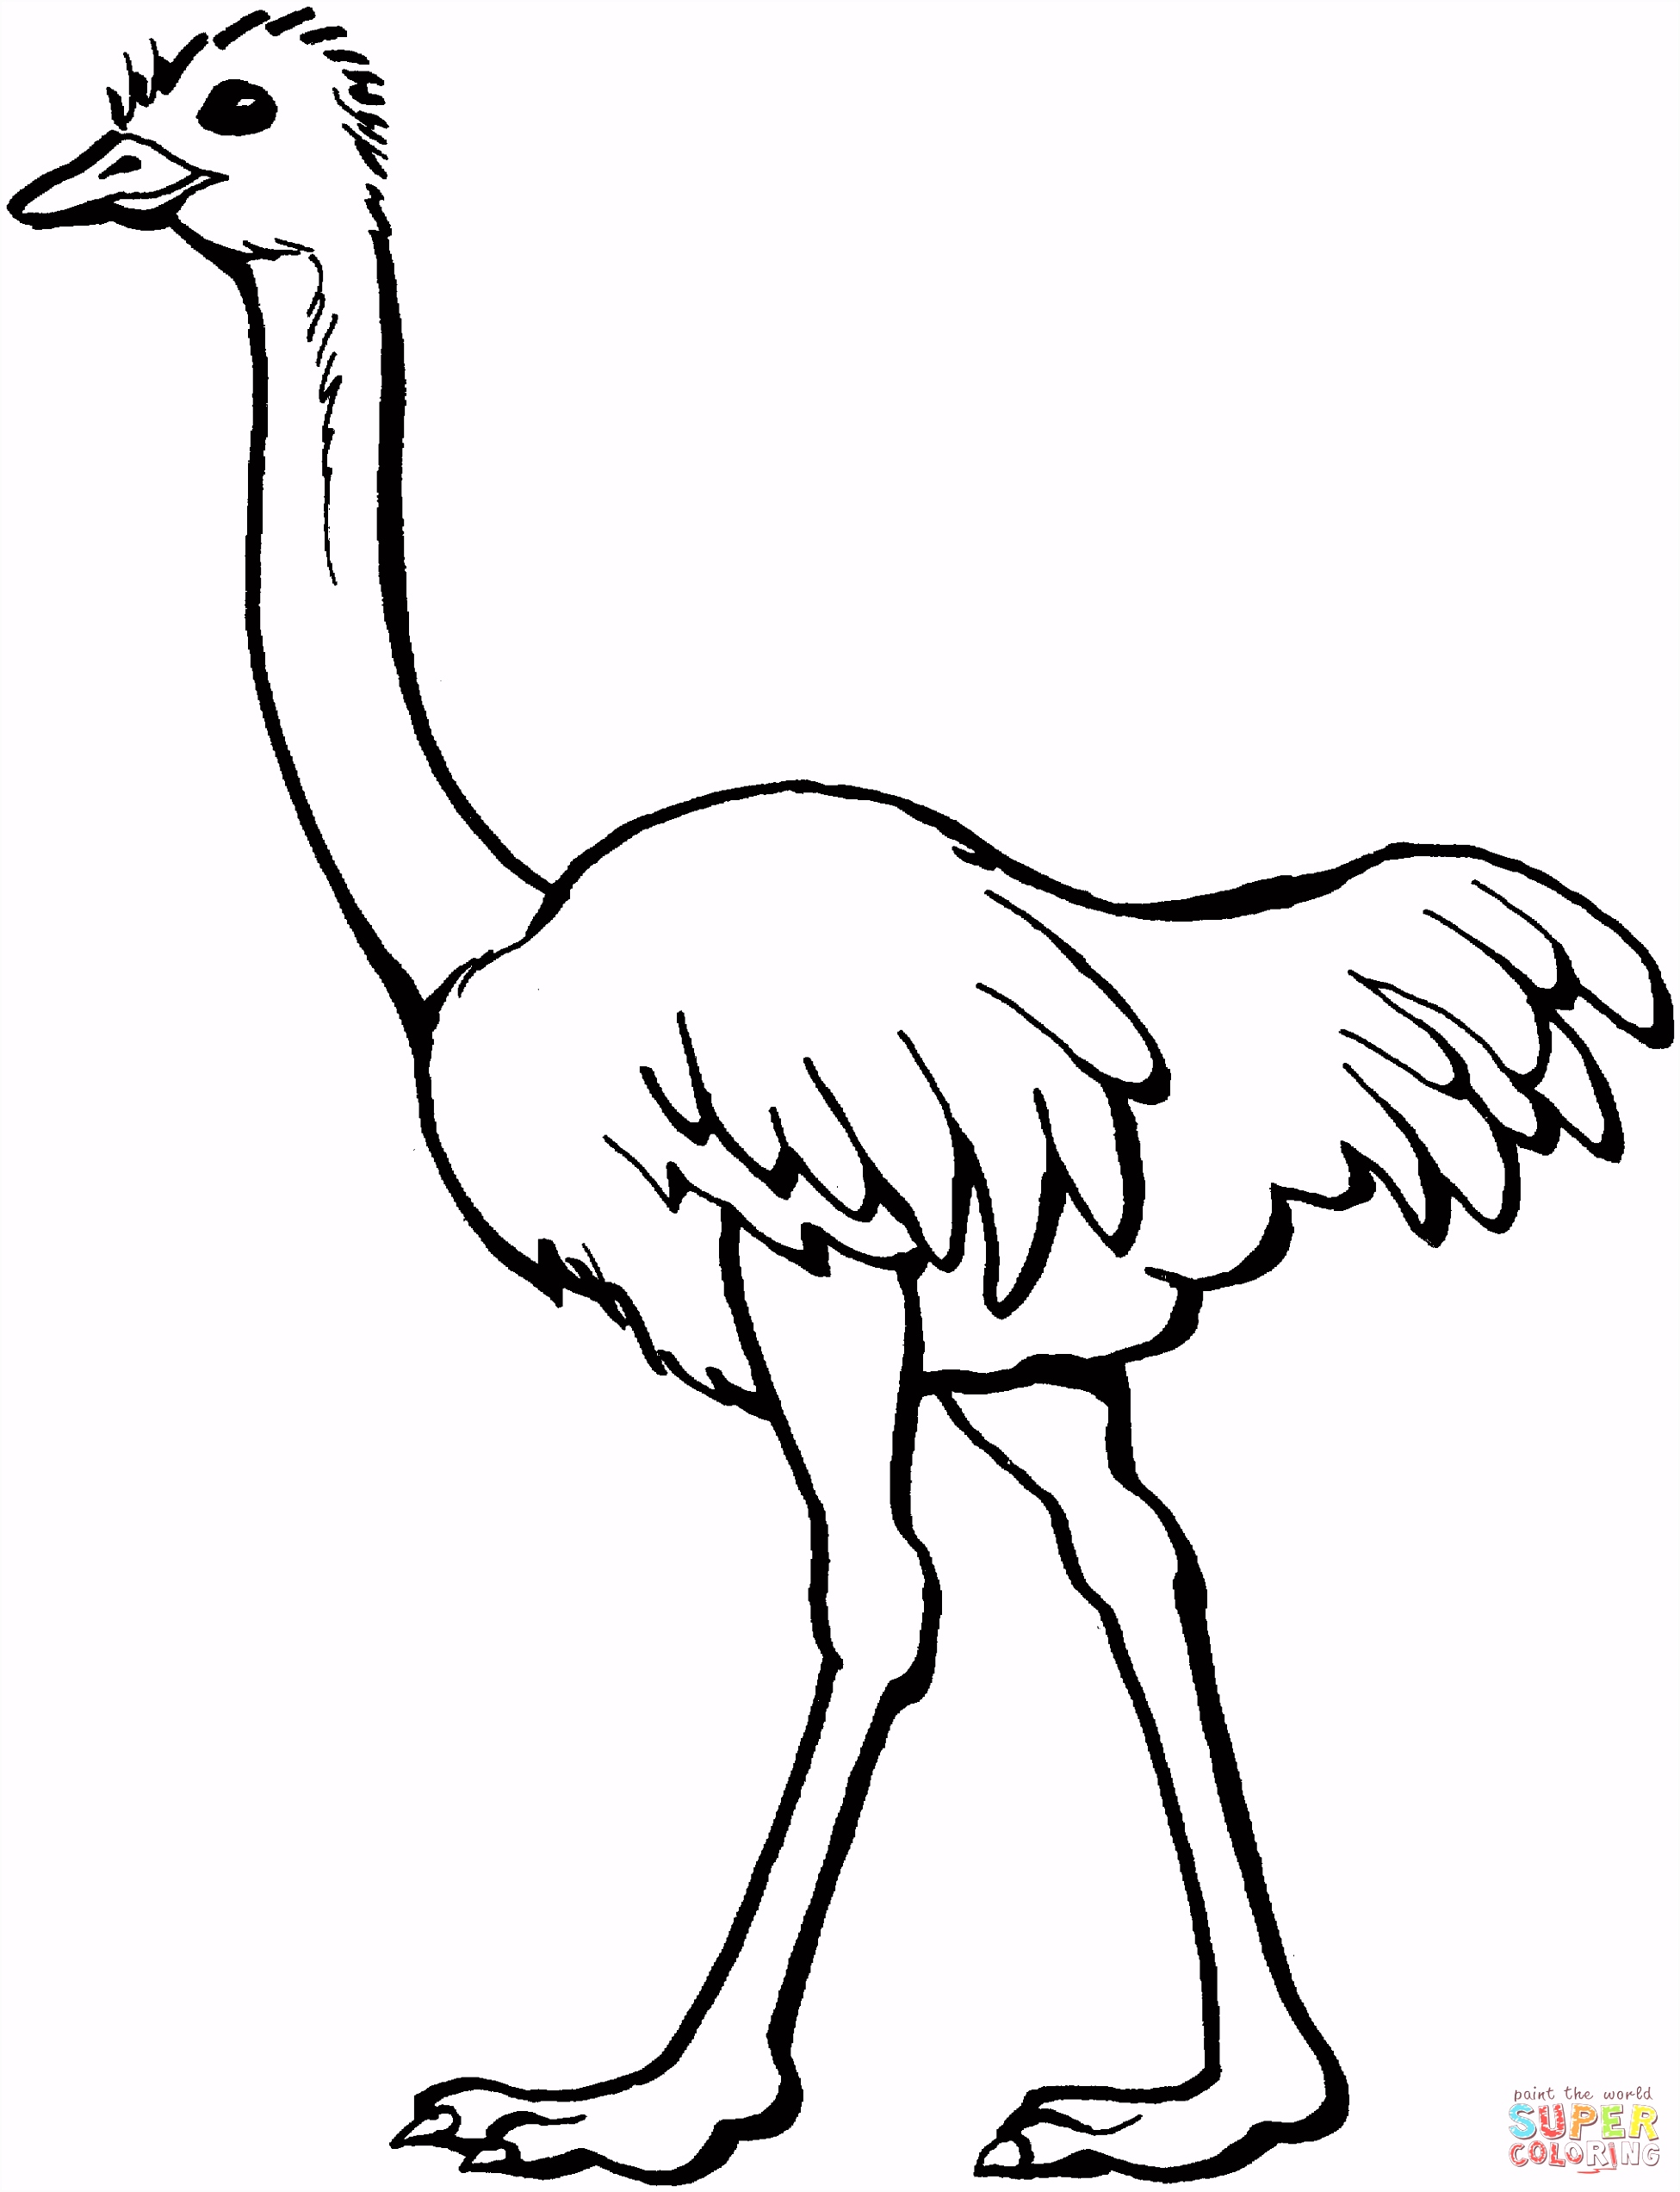 ostrich coloring page 2033—2652 illiterate